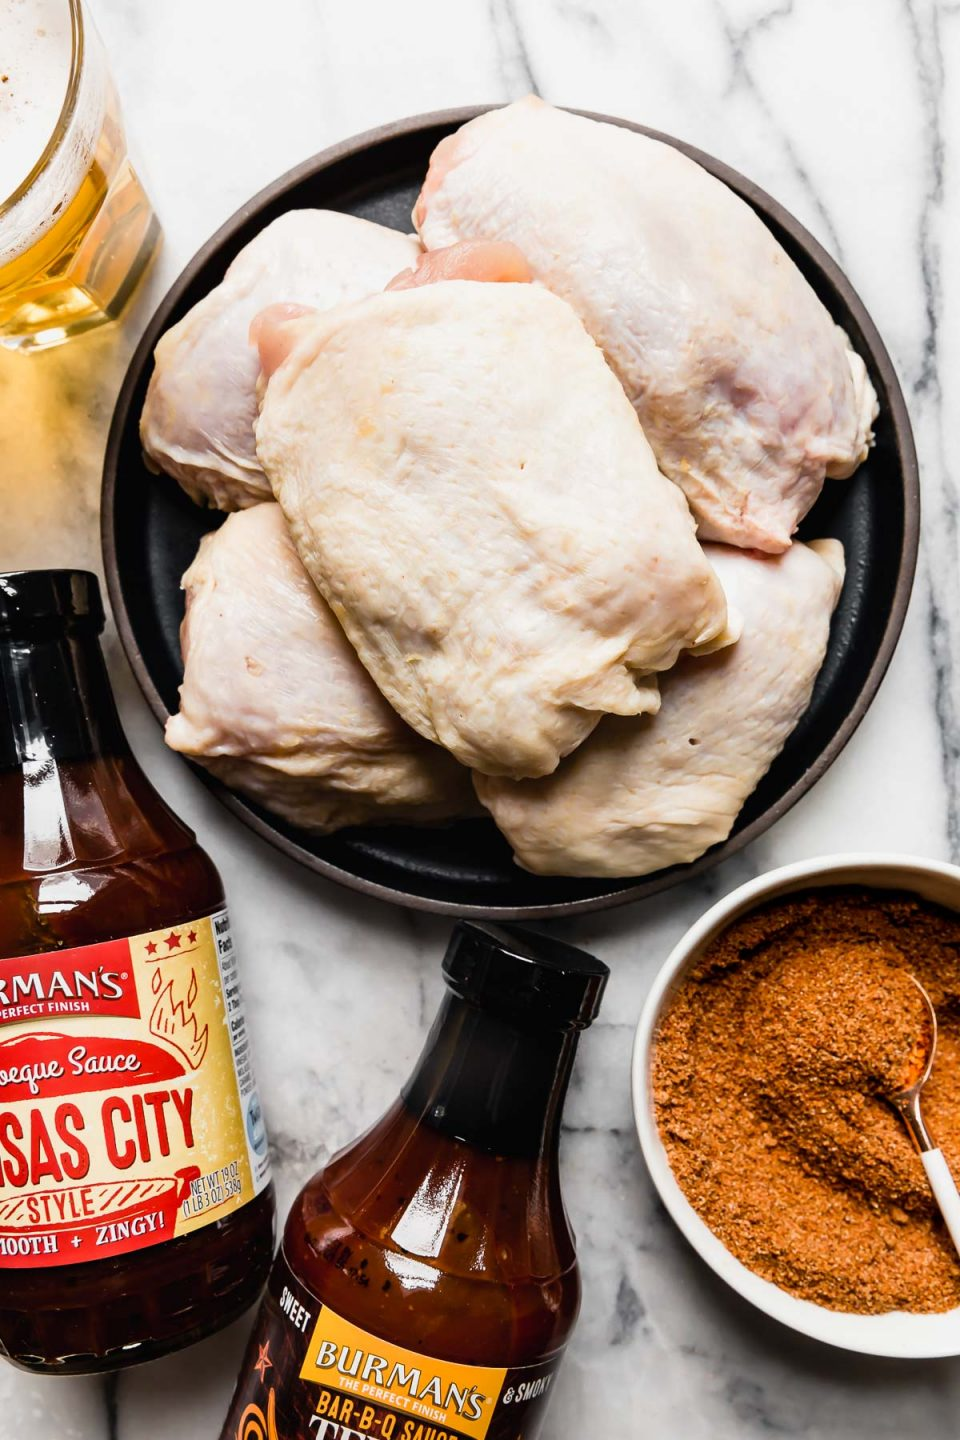 Ingredients for the easiest grilled BBQ chicken recipe! Chicken thighs, beer, BBQ sauce & a simple dry rub arranged on a white marble surface.